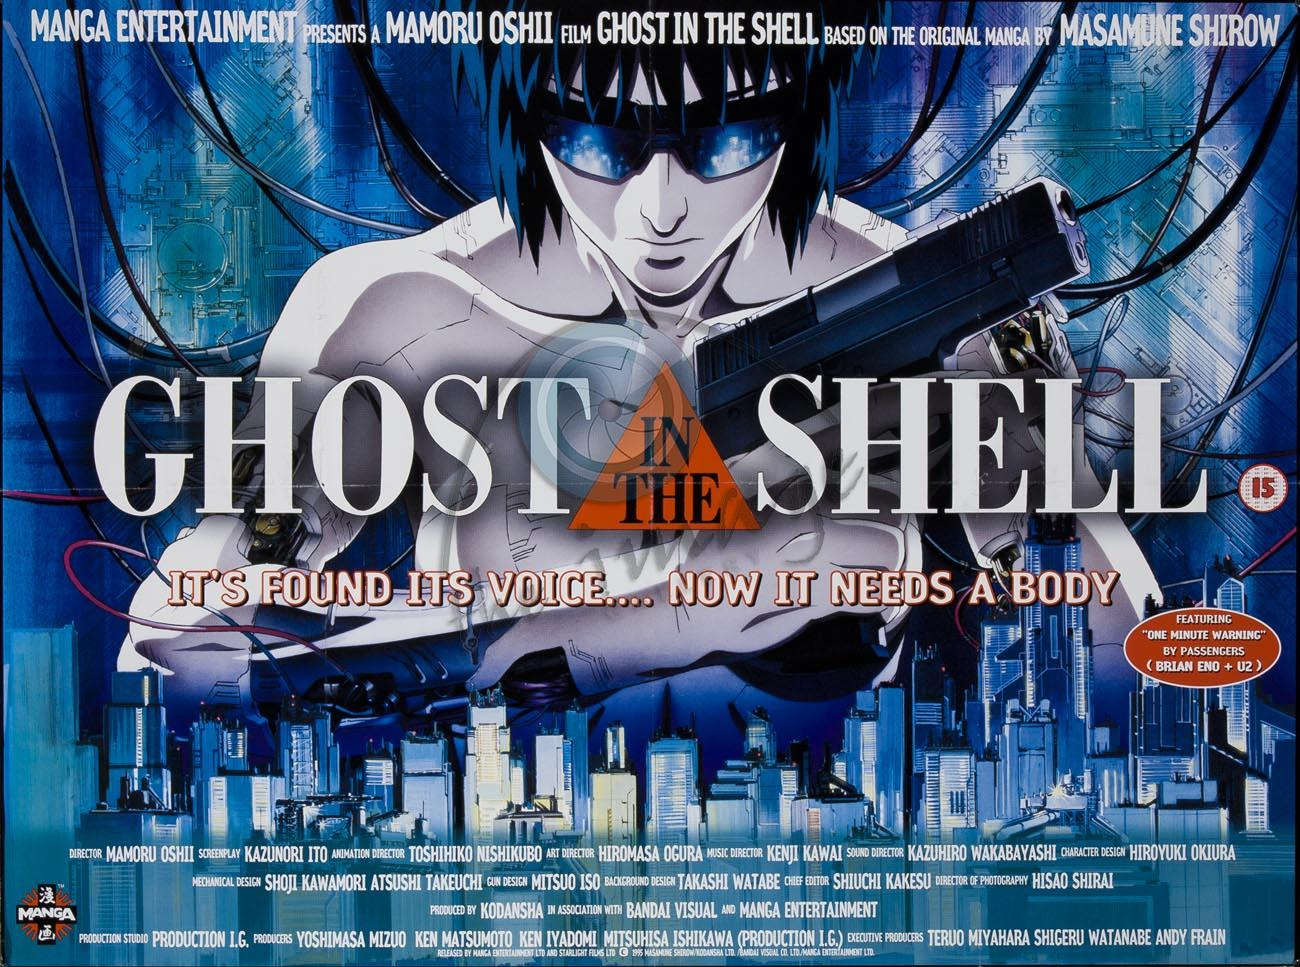 The Watchers Film Show Blog: Ghost In The Shell (1995)